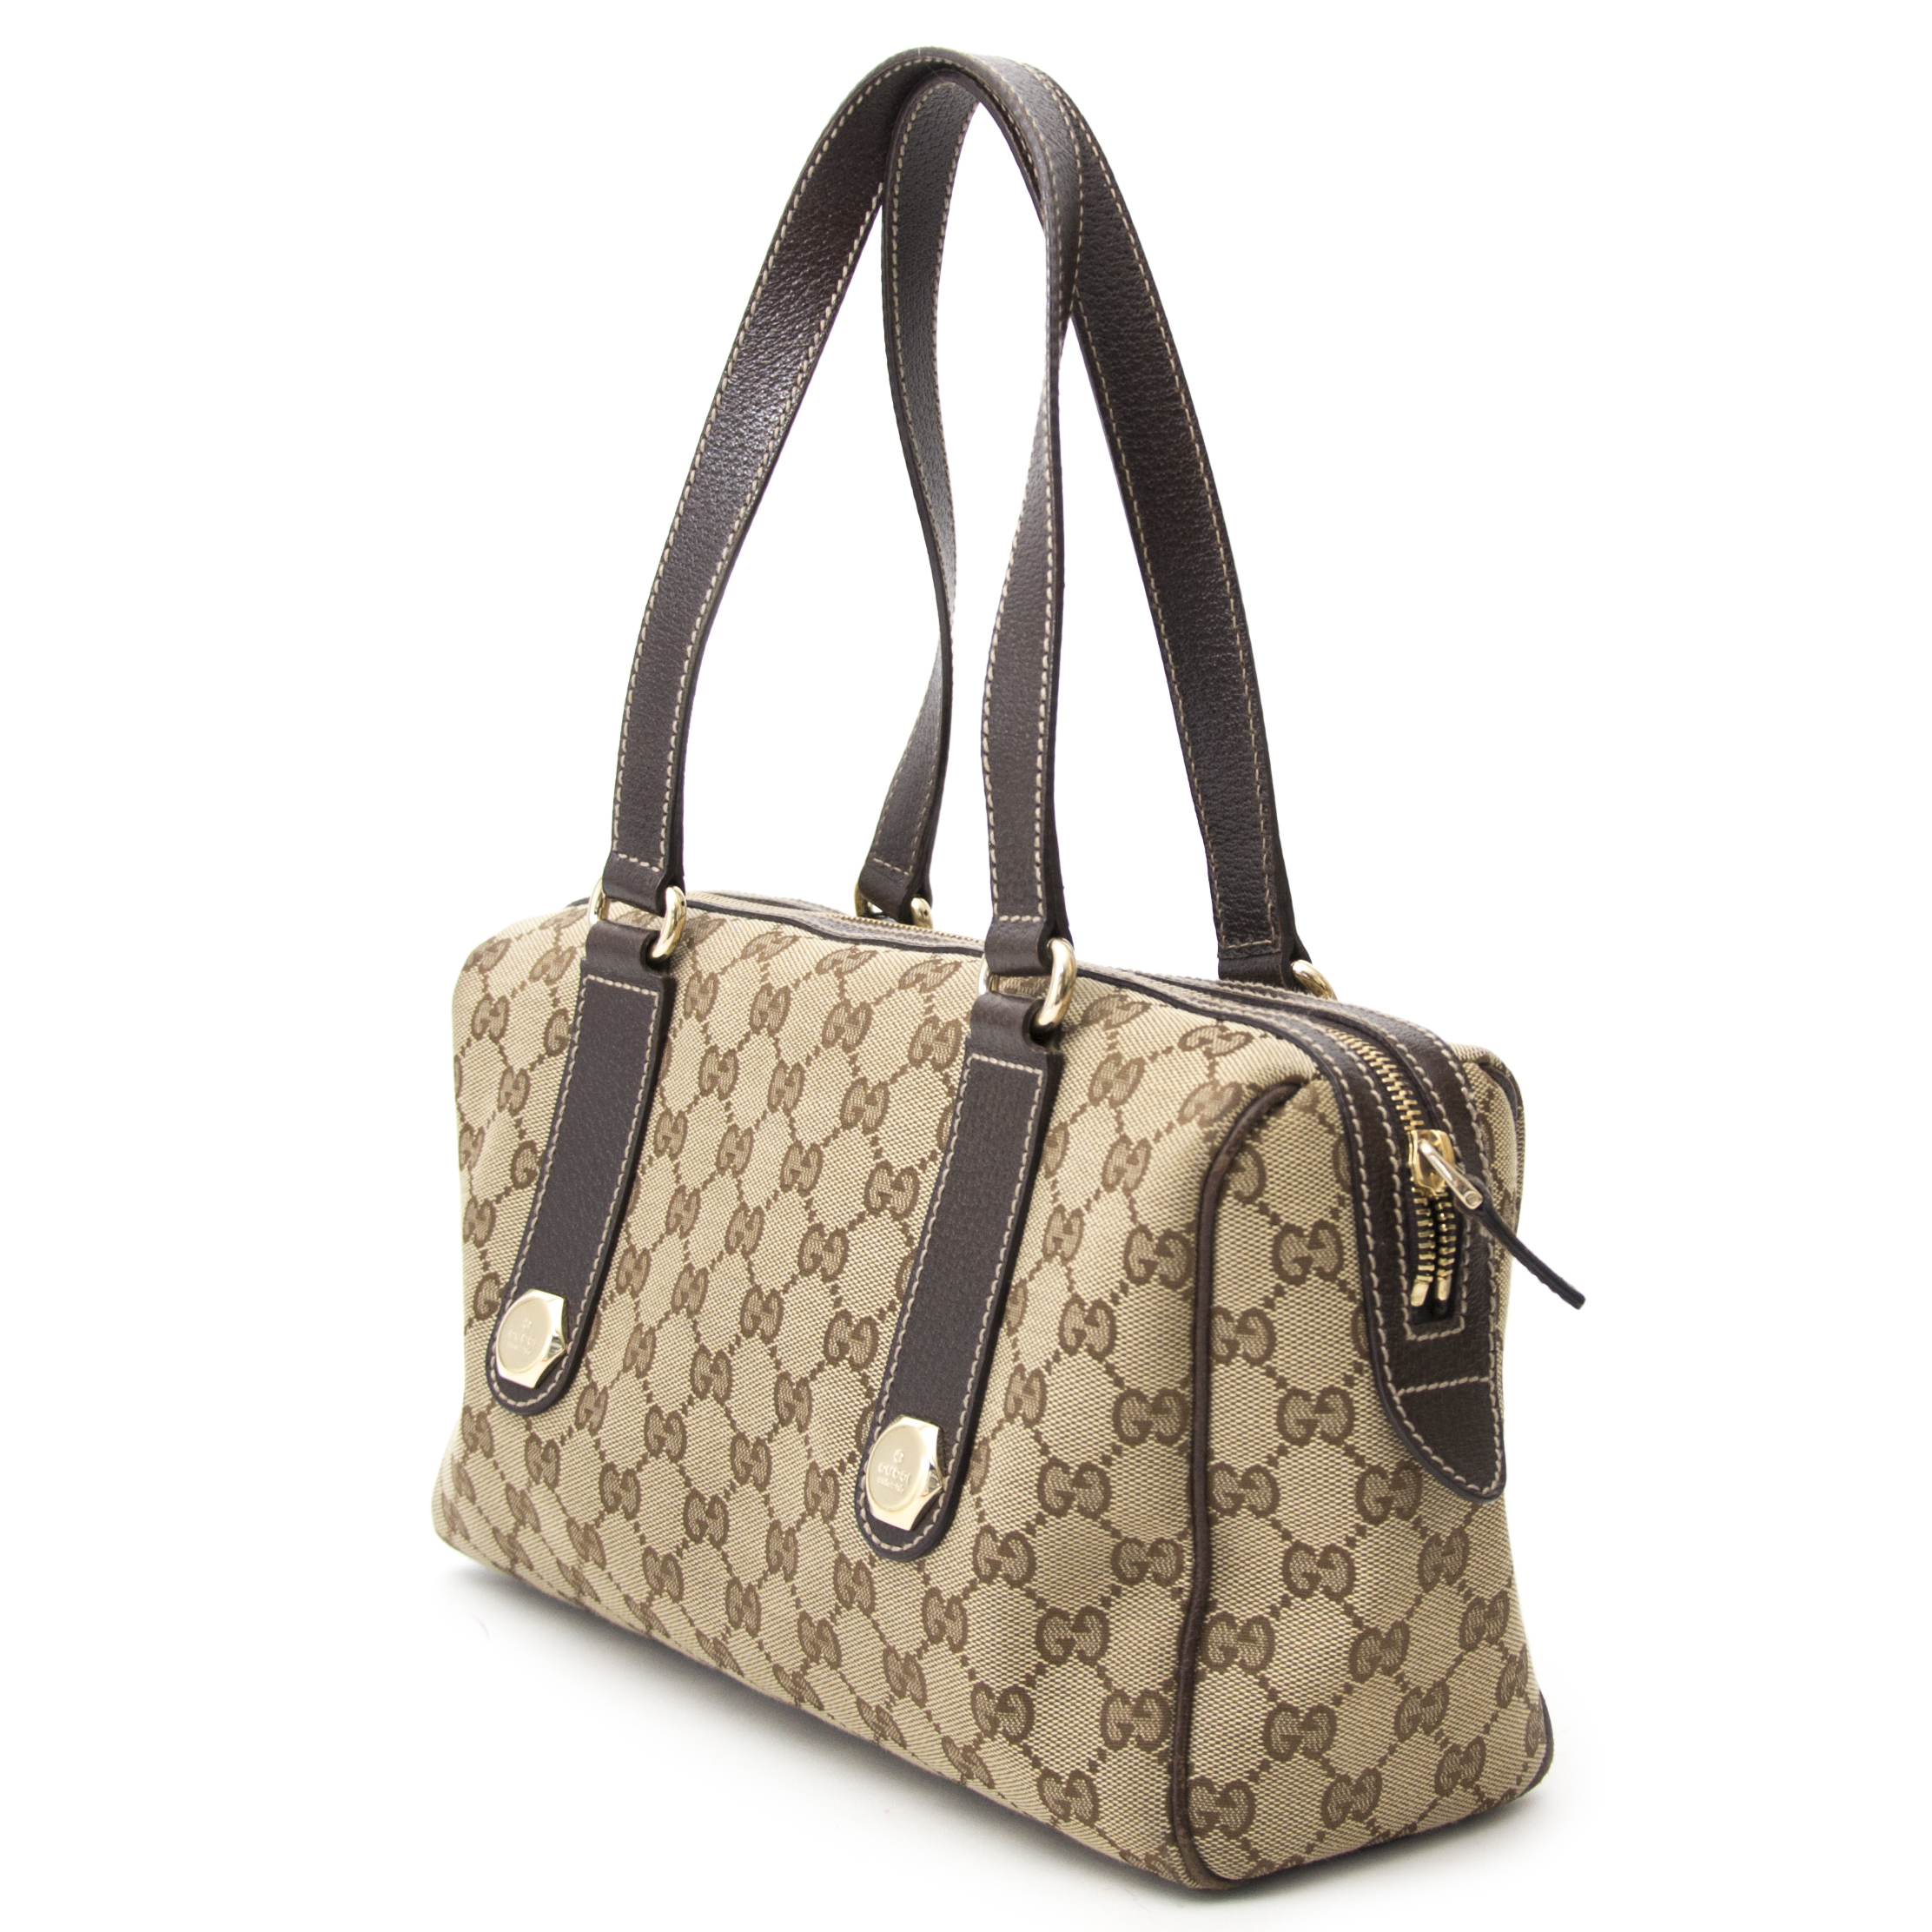 shop safe onilne secondhand luxury Louis Vuitton Epi Beige